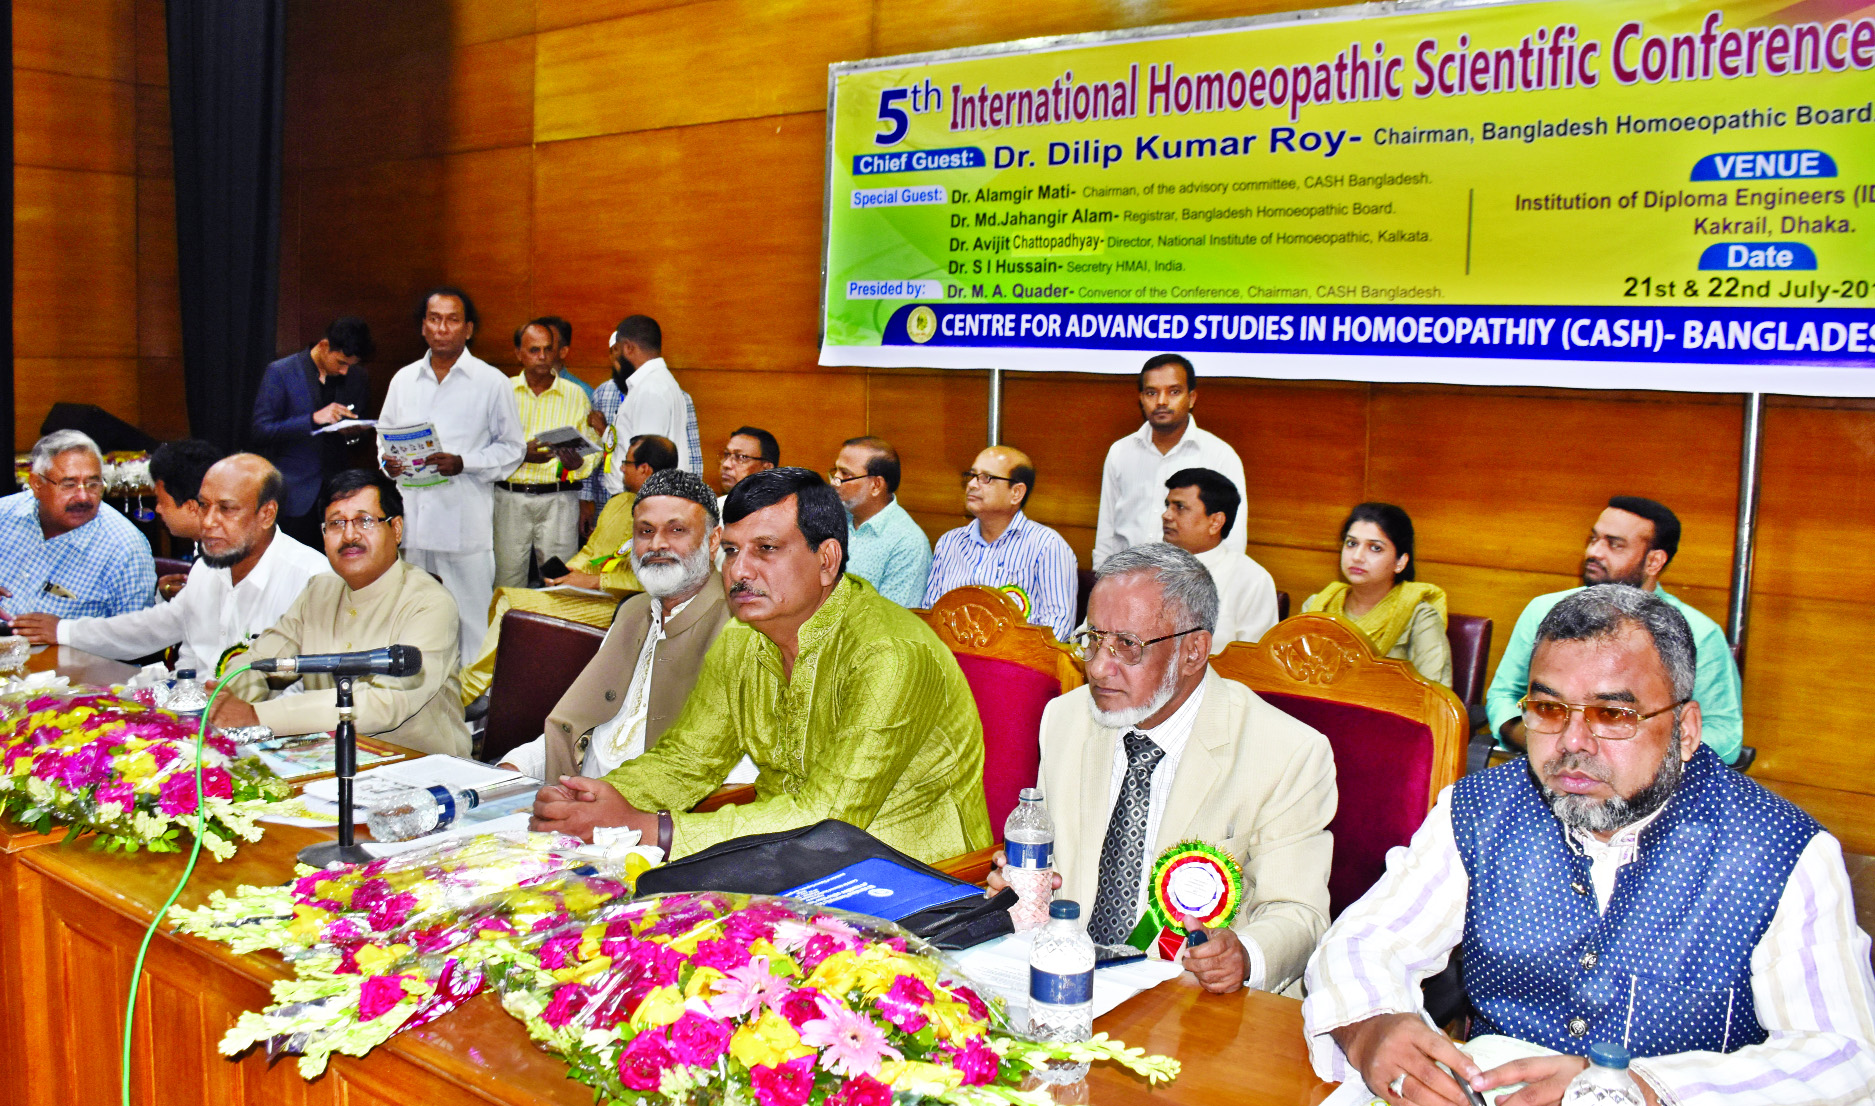 Chairman of Bangladesh Homeopathic Board Dr Dilip Kumar Roy speaking at the 5th International Homeopathic Scientific Conference at IDEB Auditorium in the city on Friday.